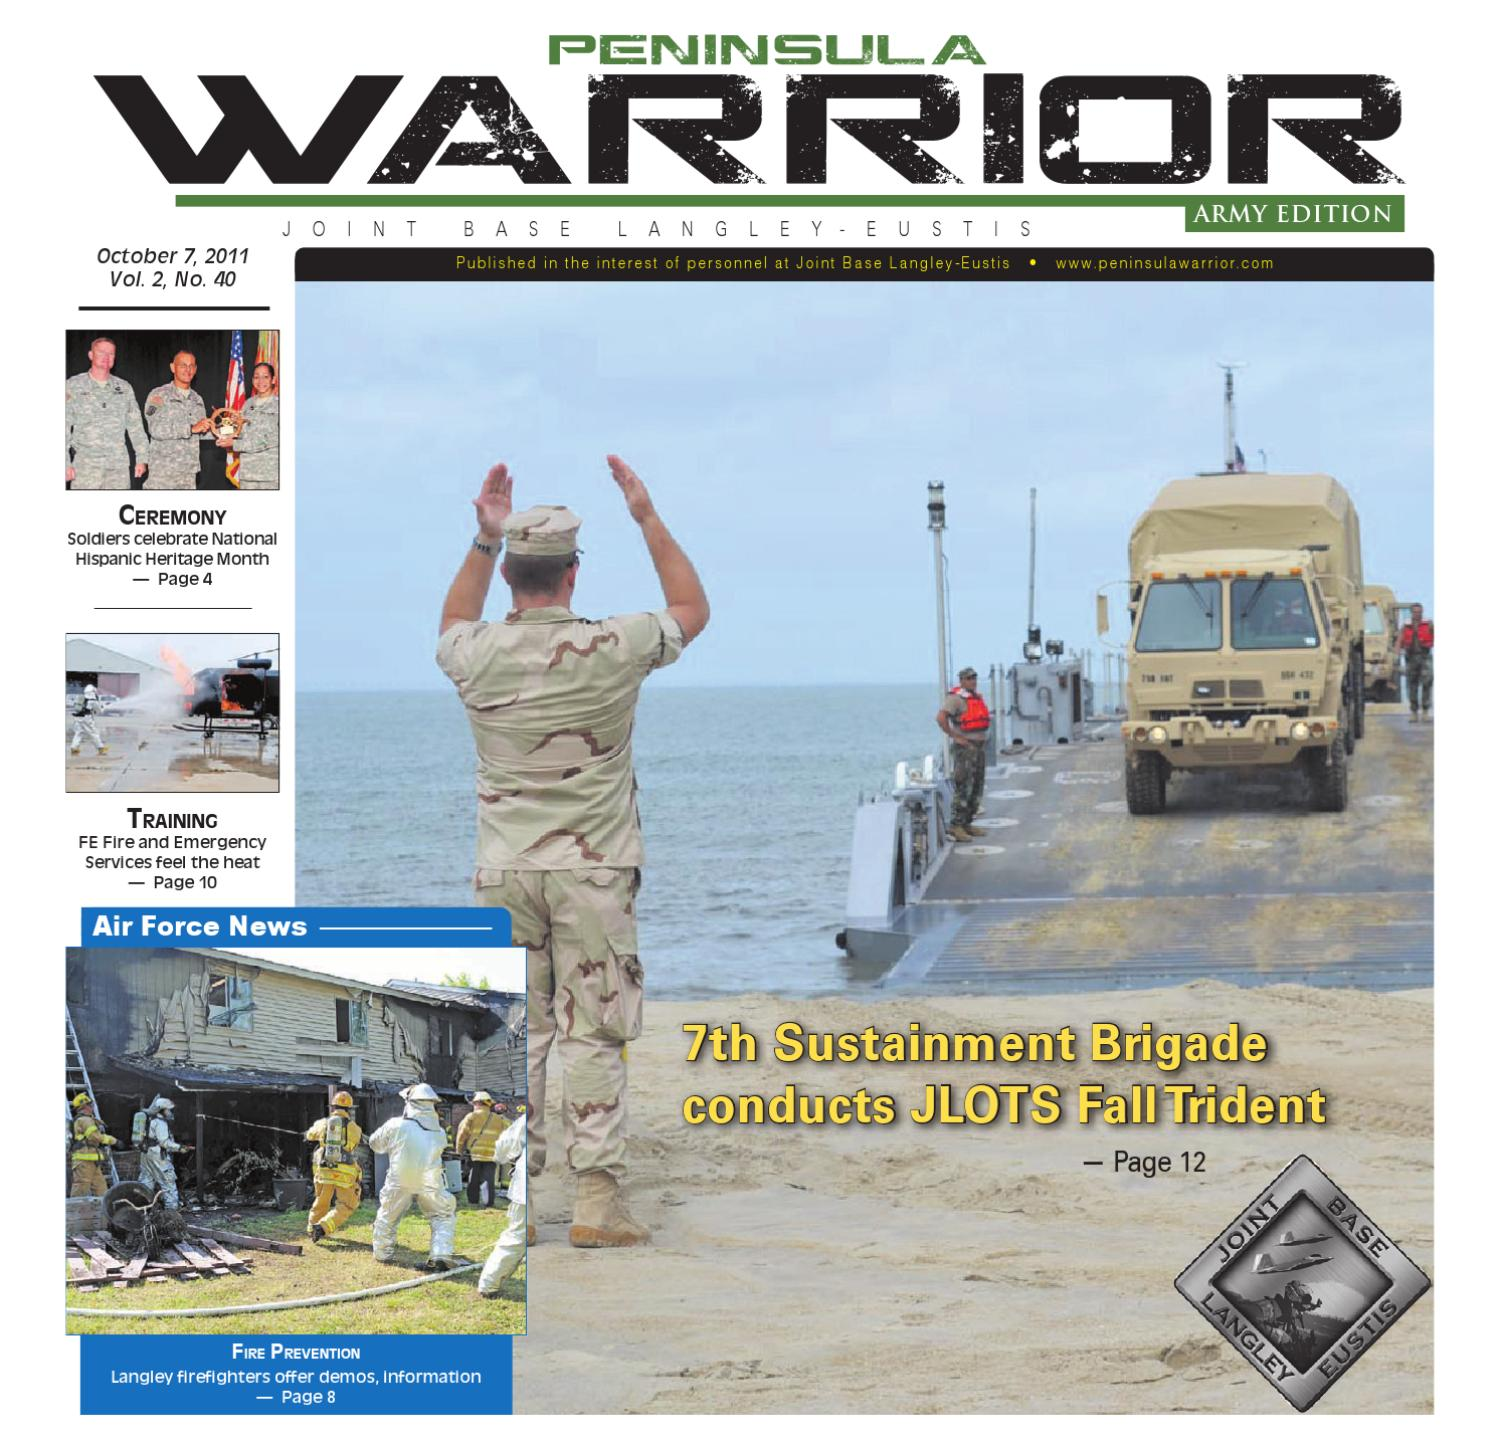 Peninsula Warrior Oct 7 2011 Army Edition By Military News